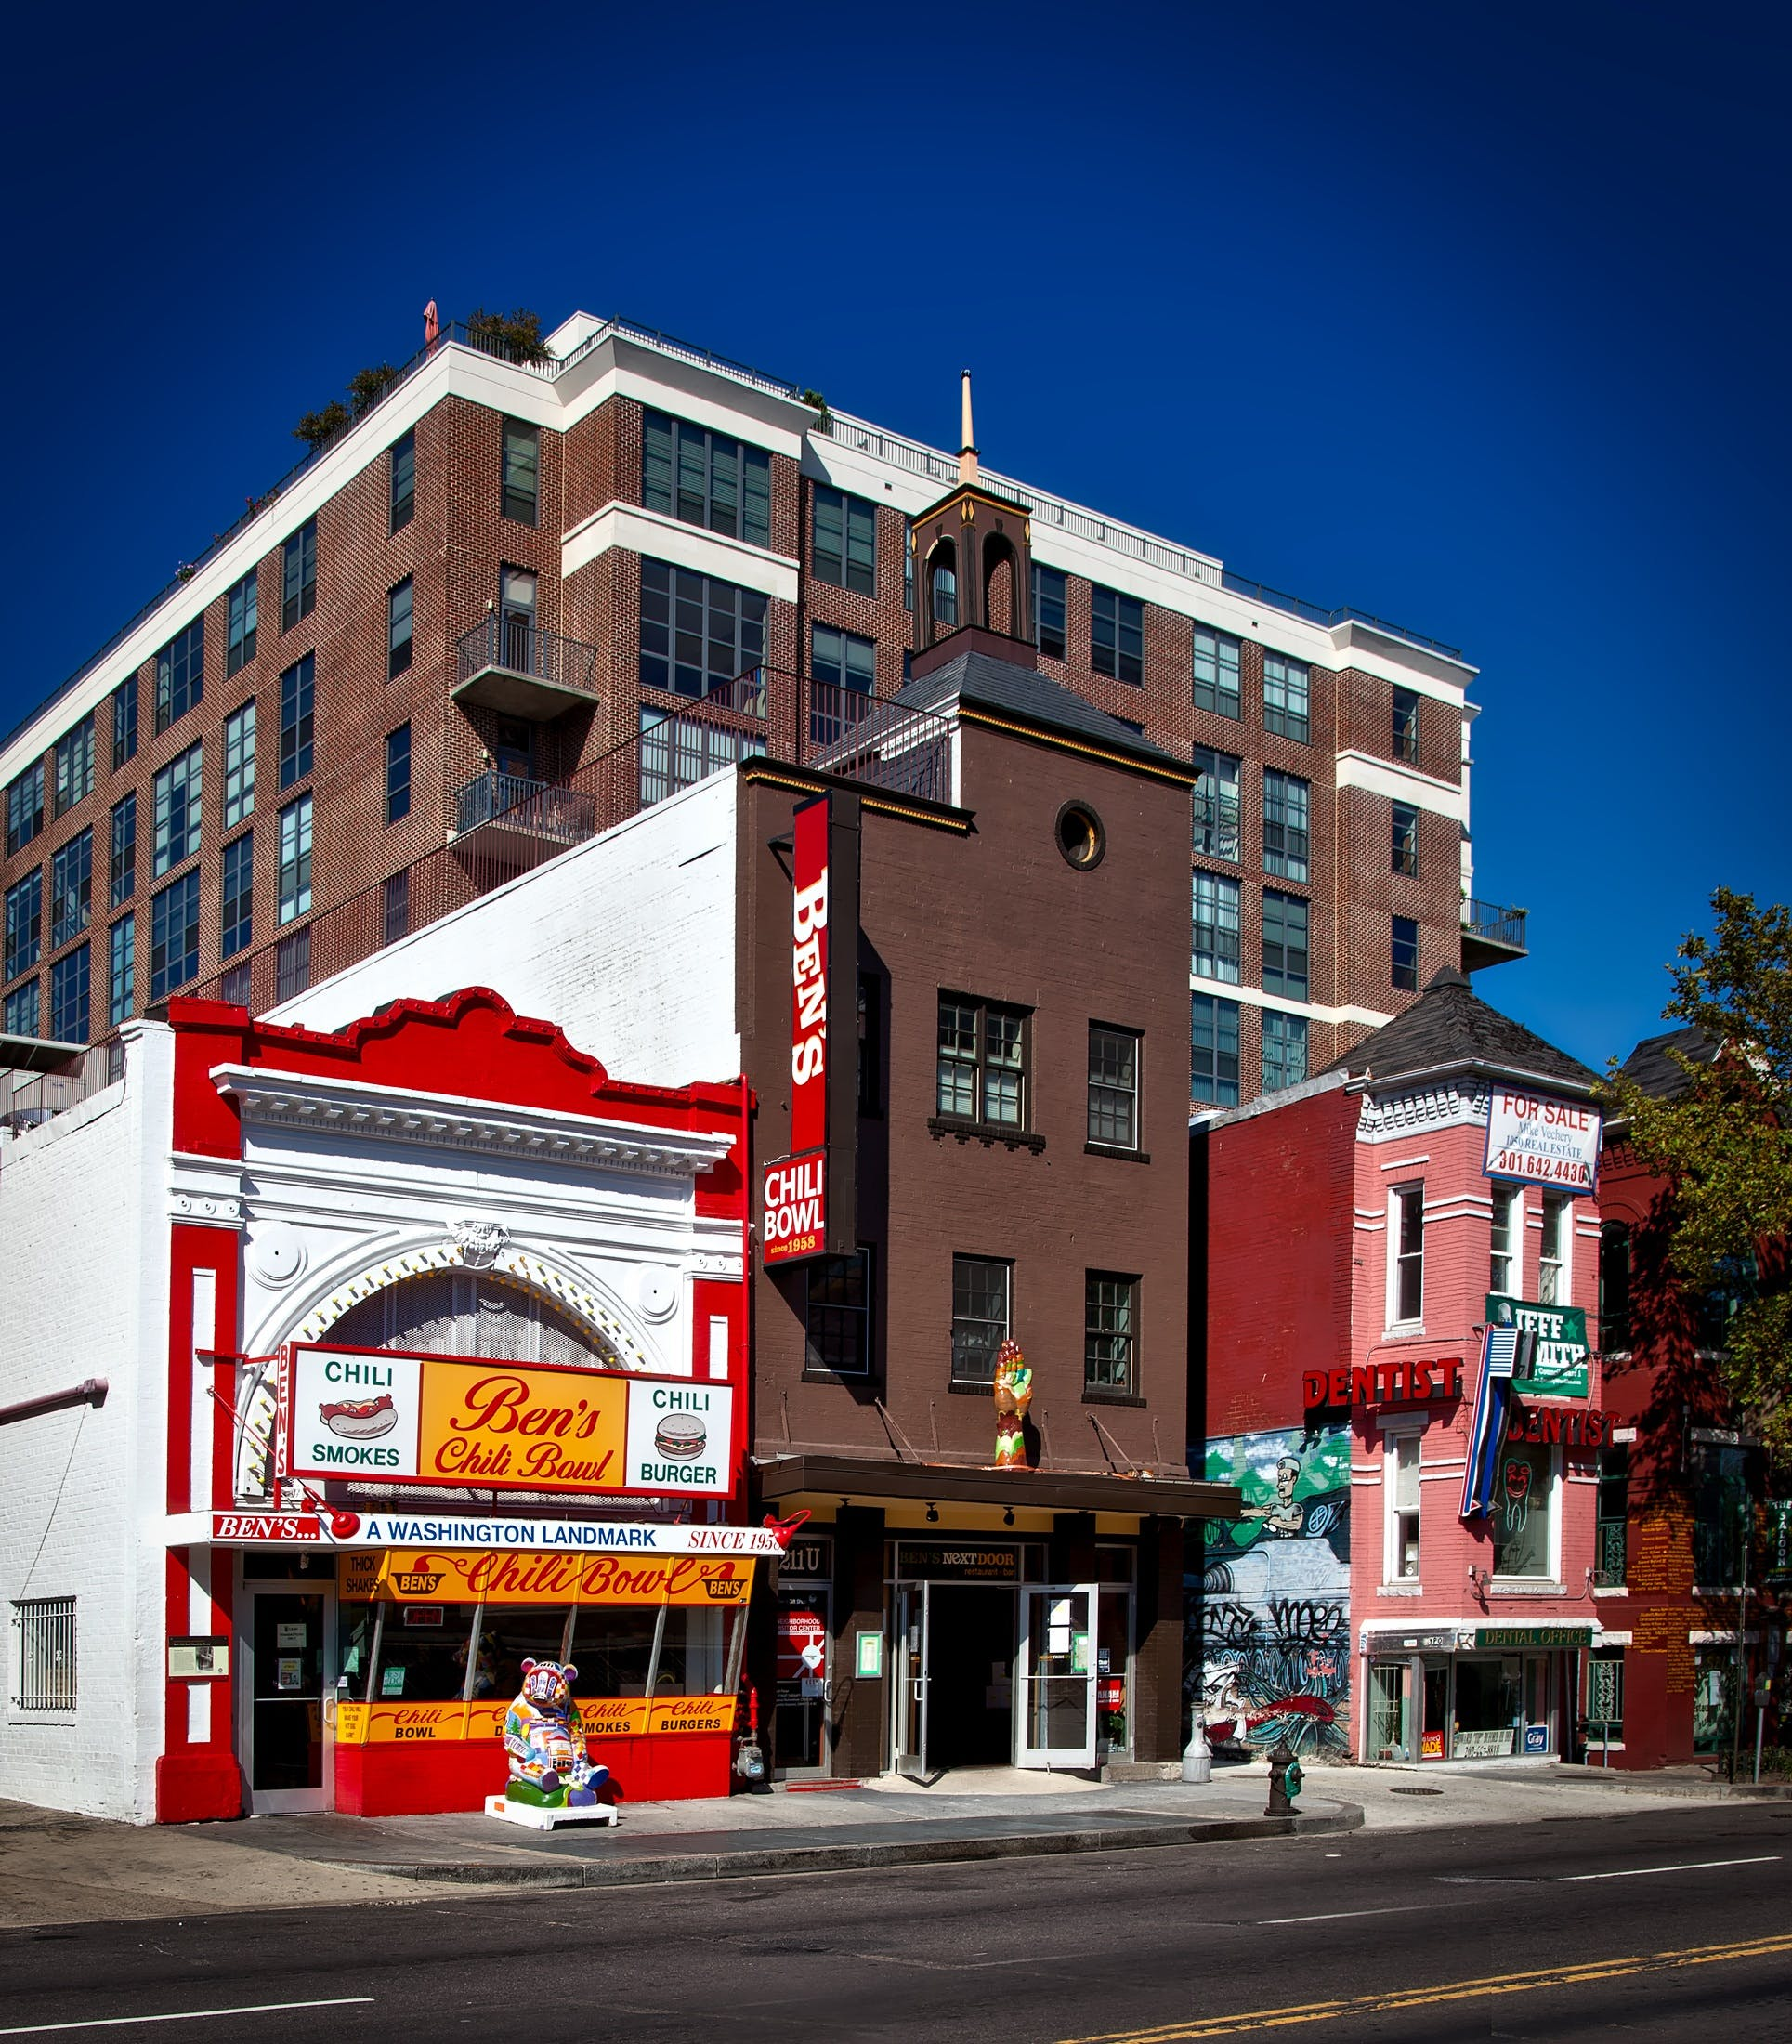 architecture, ben's chili bowl, building